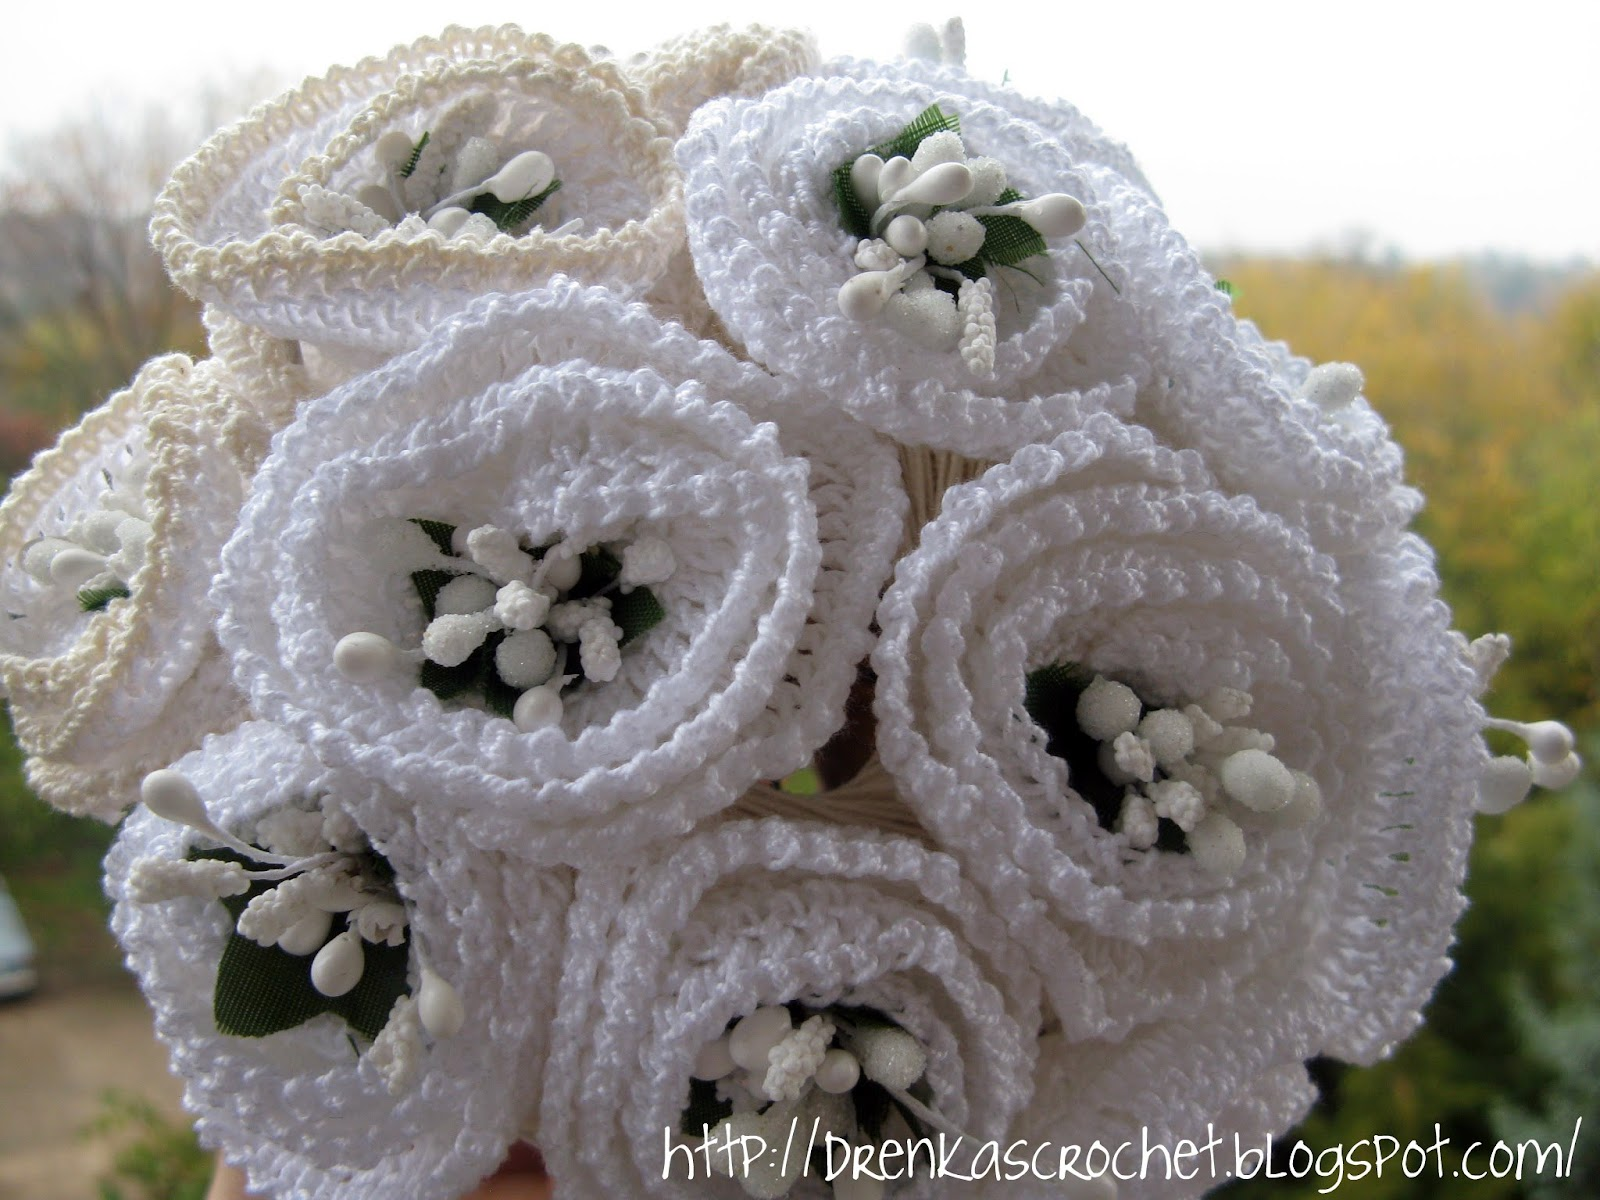 Drenkas crochet crocheted flowers and a crocheted flowers and a possibly a wedding bouquet izmirmasajfo